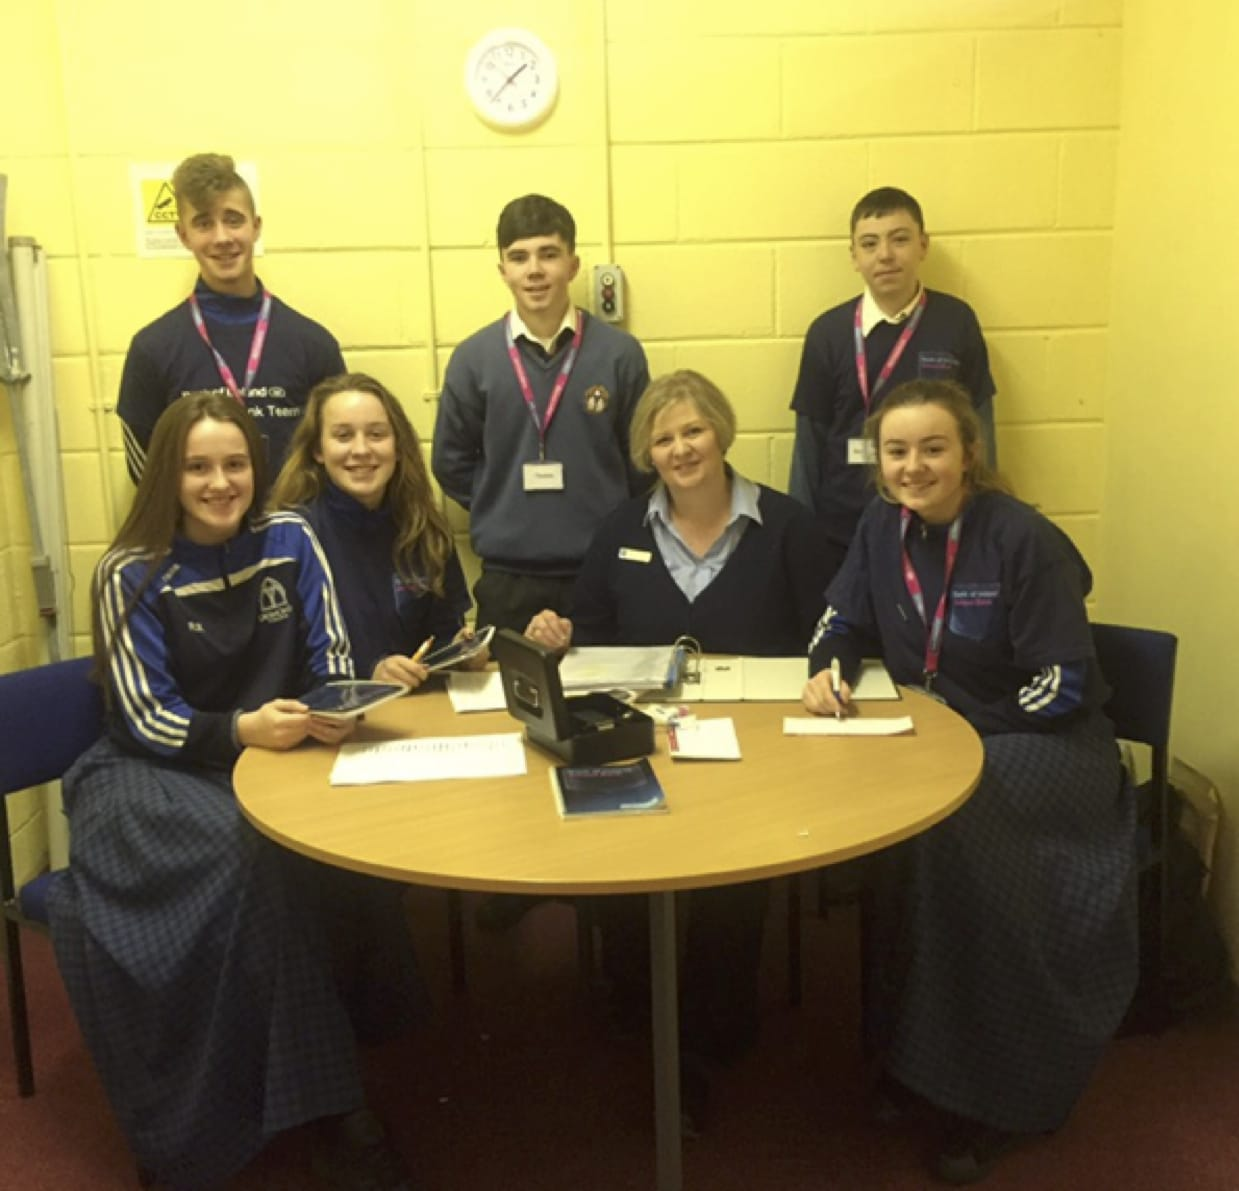 Feb 2017: The School Bank in Desmond College in conjunction with Bank of Ireland